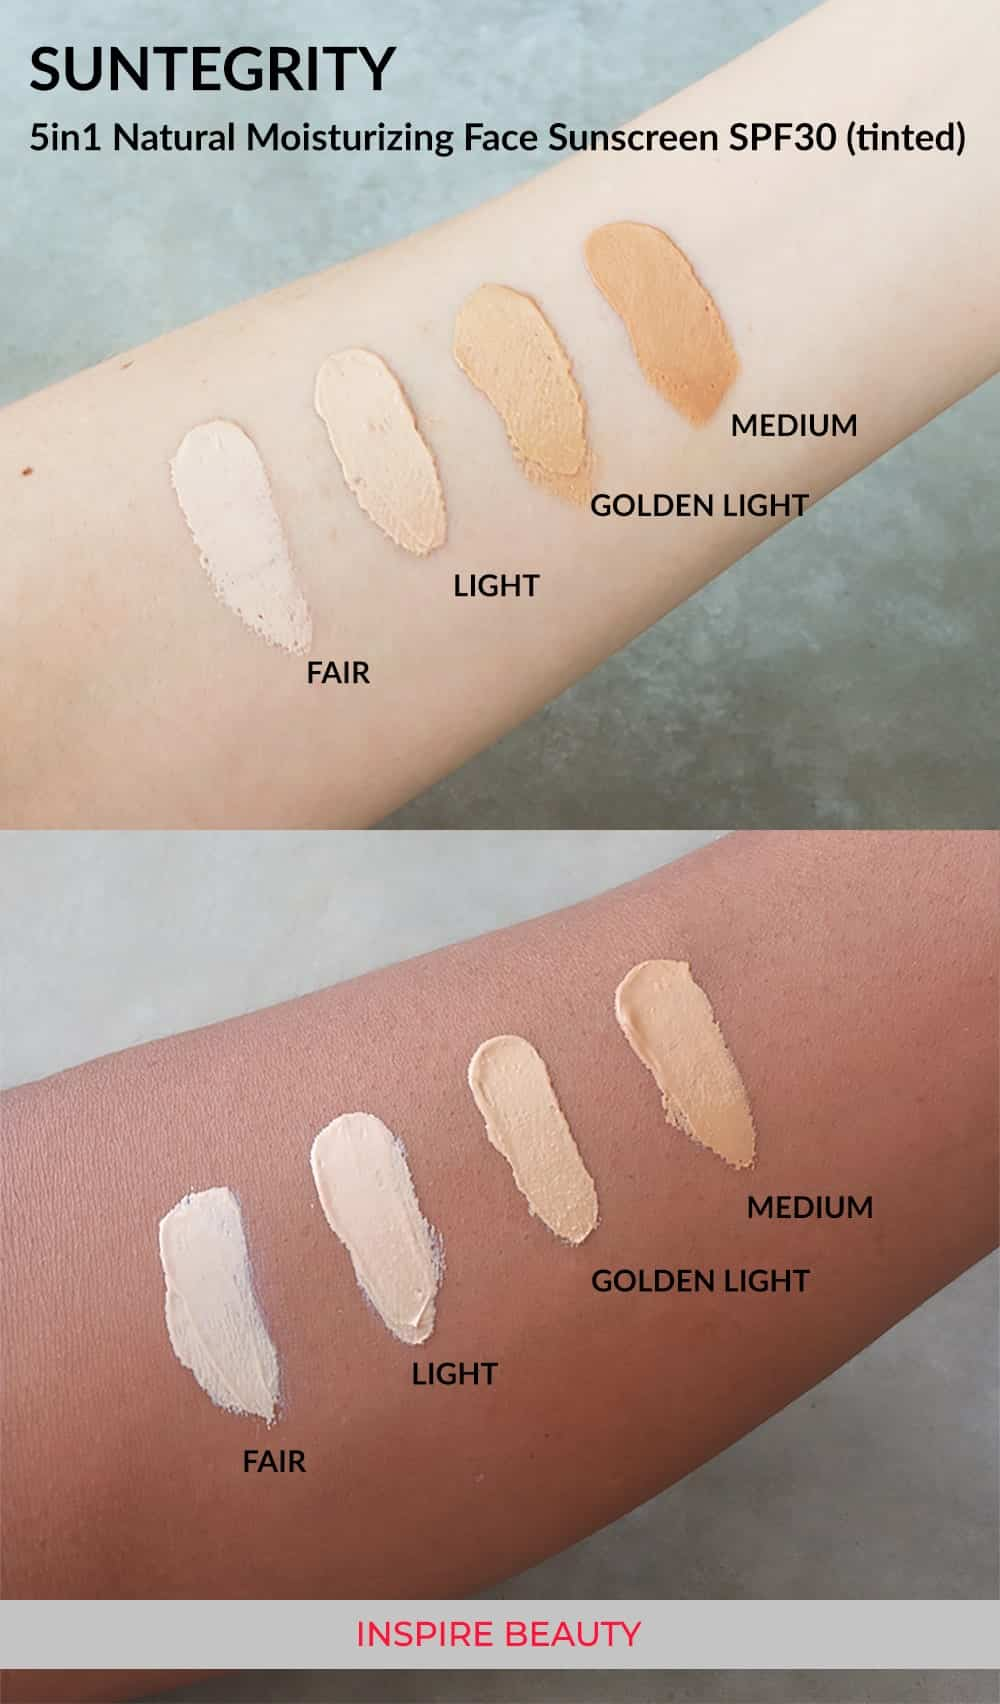 Suntegrity 5 in 1 swatches, shades fair, light golden light and medium on fair and deep skin tones.